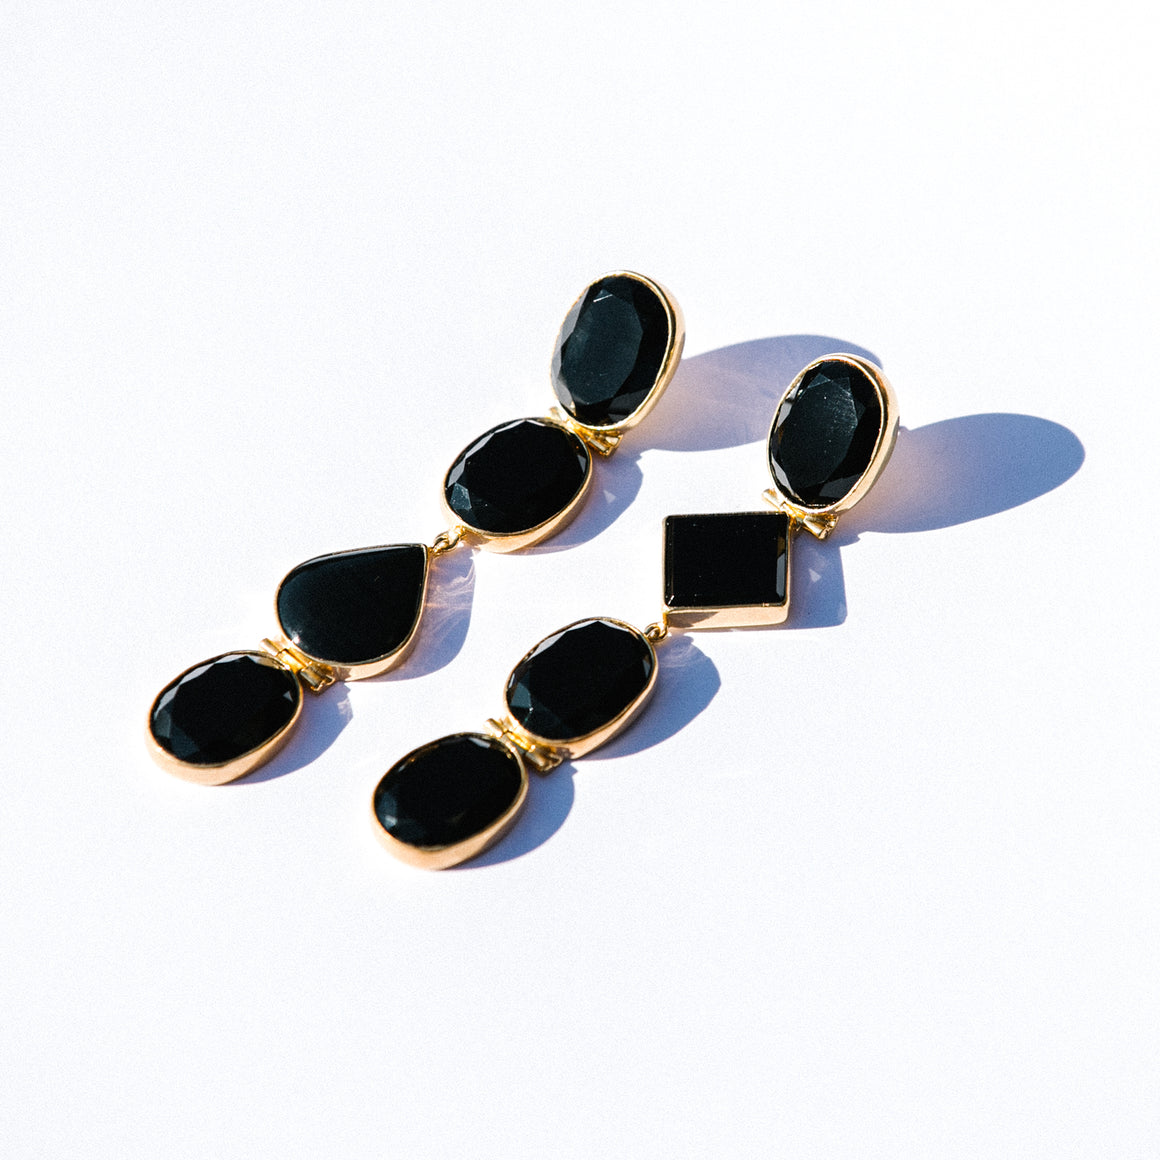 ASYMMETRICAL ONYX DROP EARRINGS